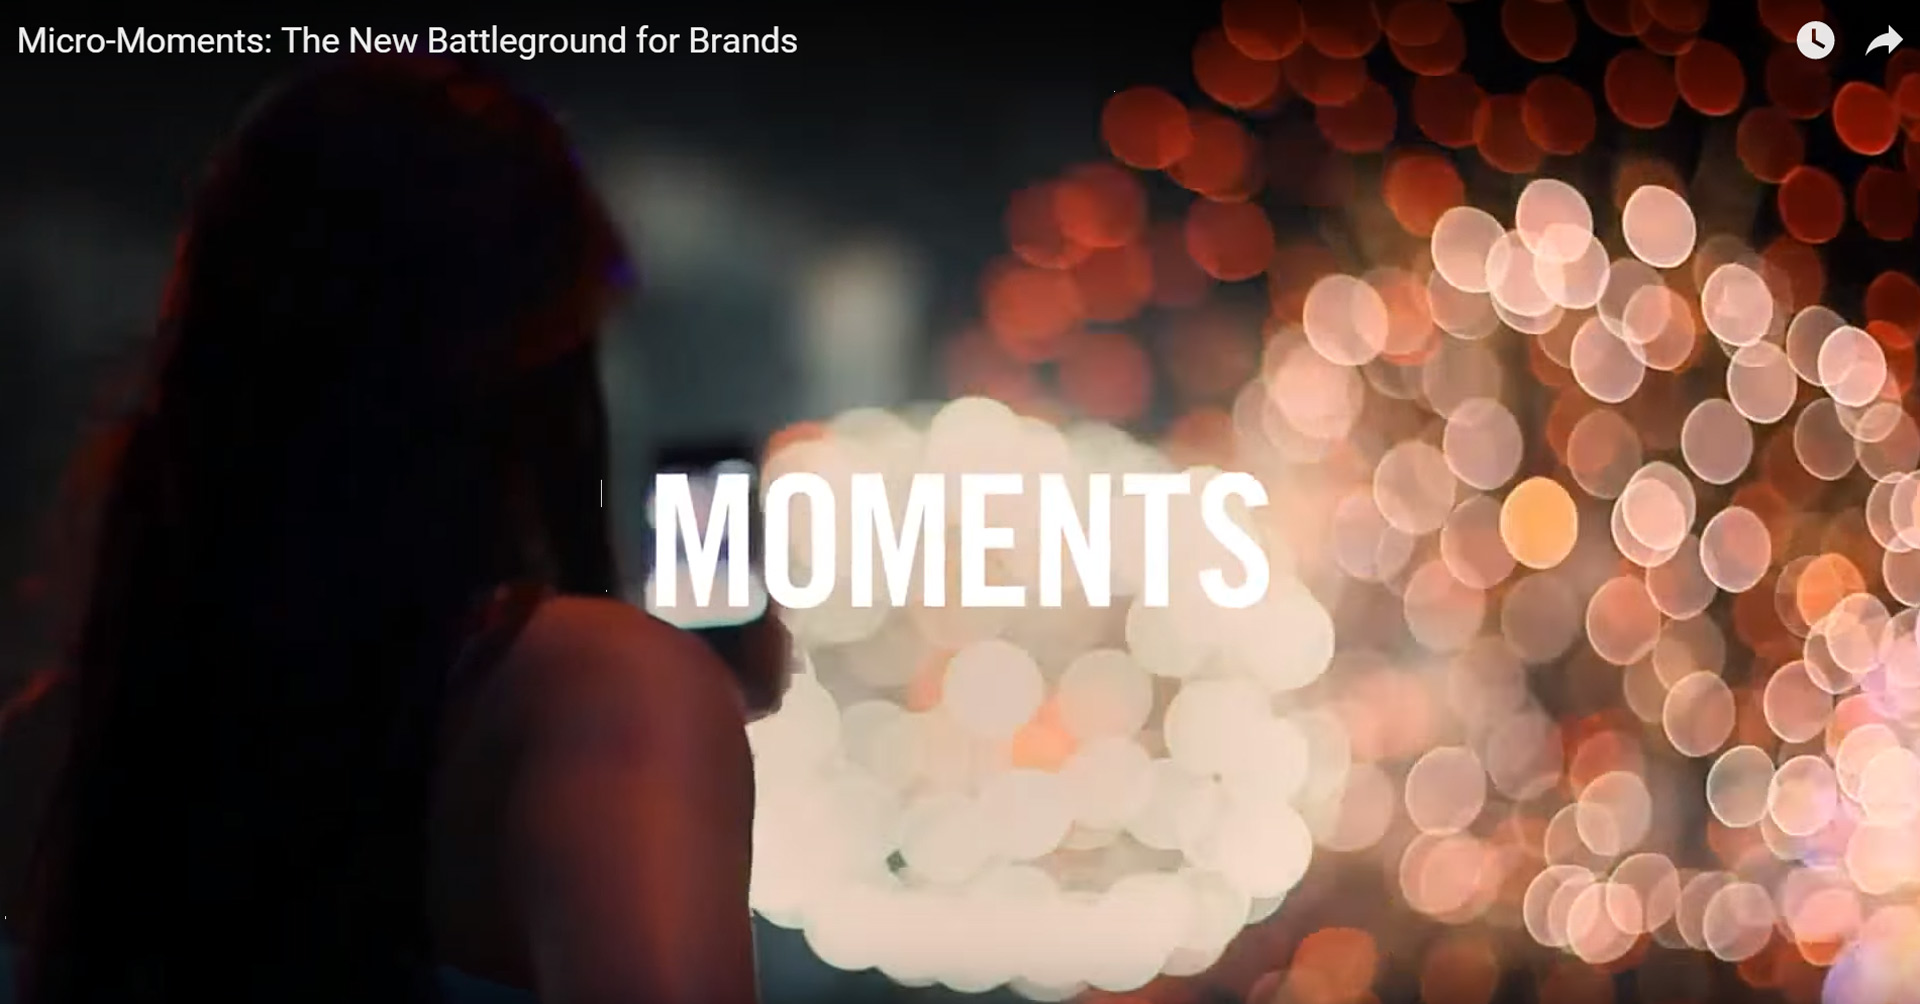 Micro-Moments the he New Battleground for Brands